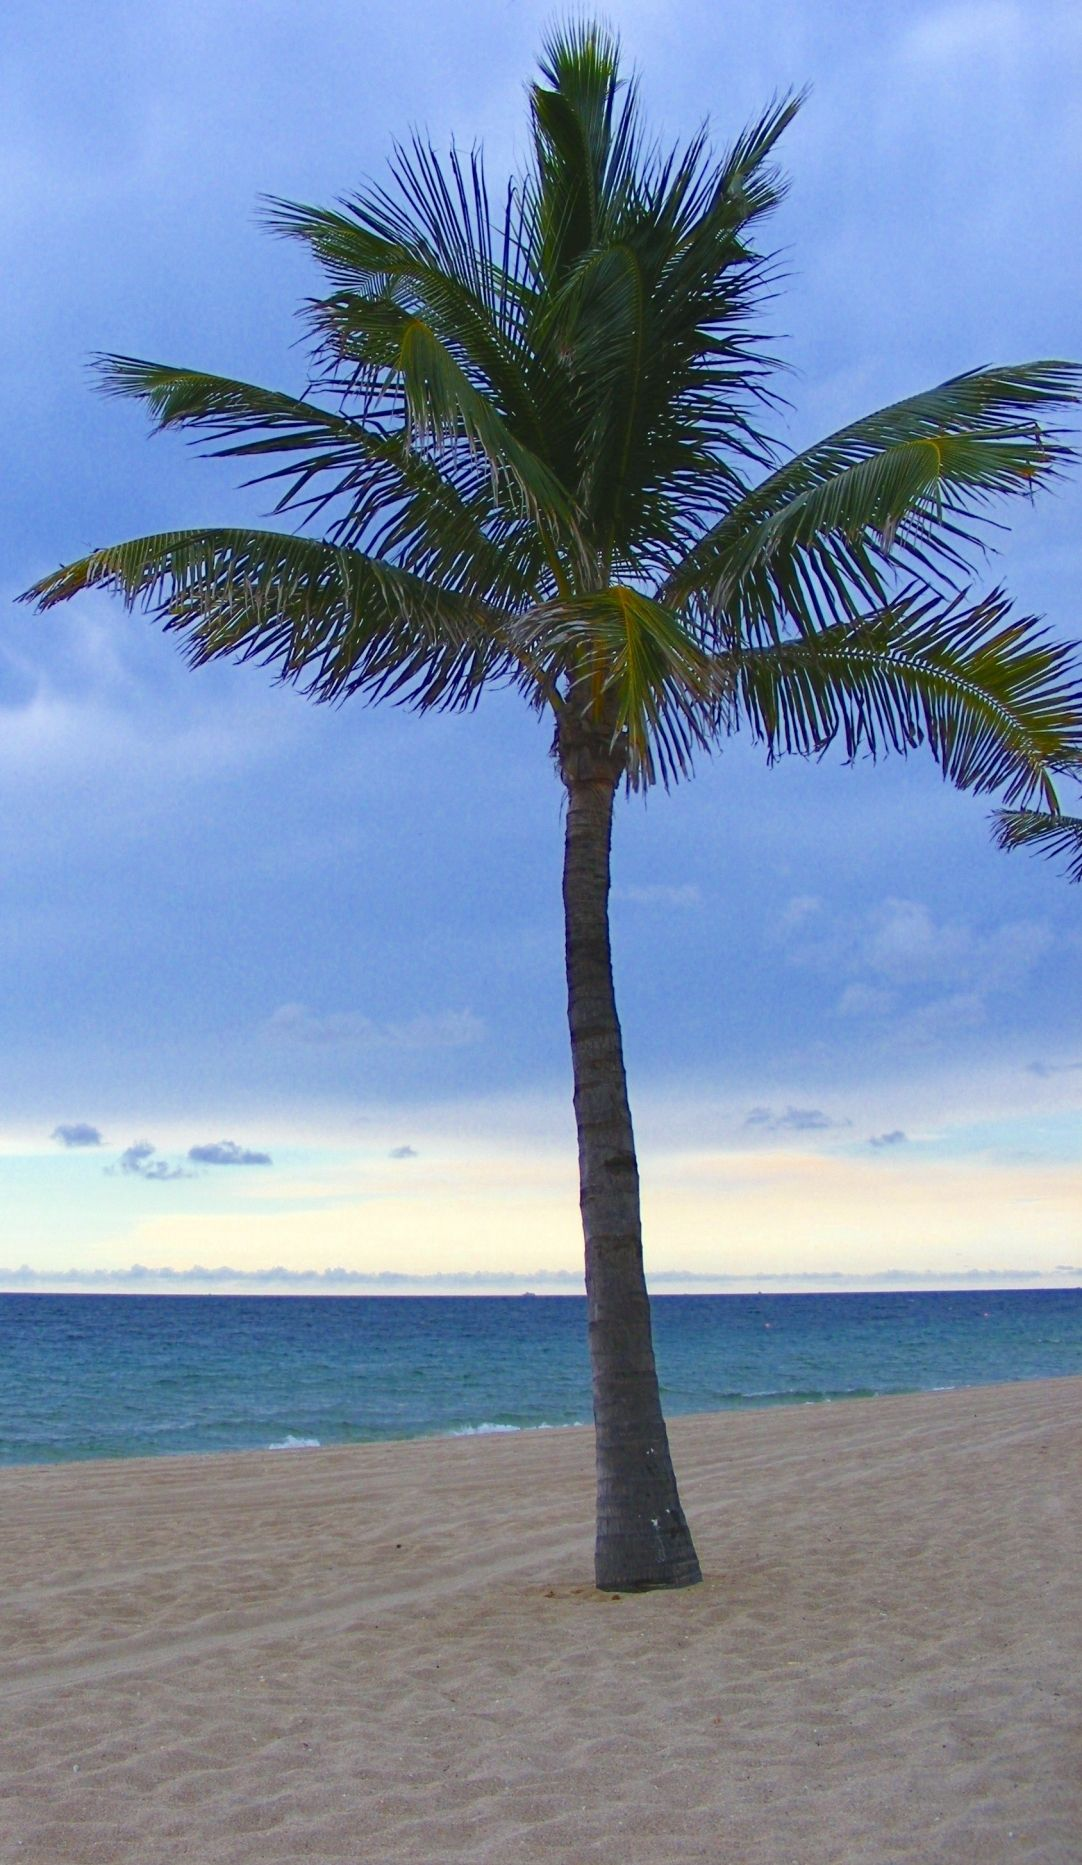 Palm Tree Image, On Beach In